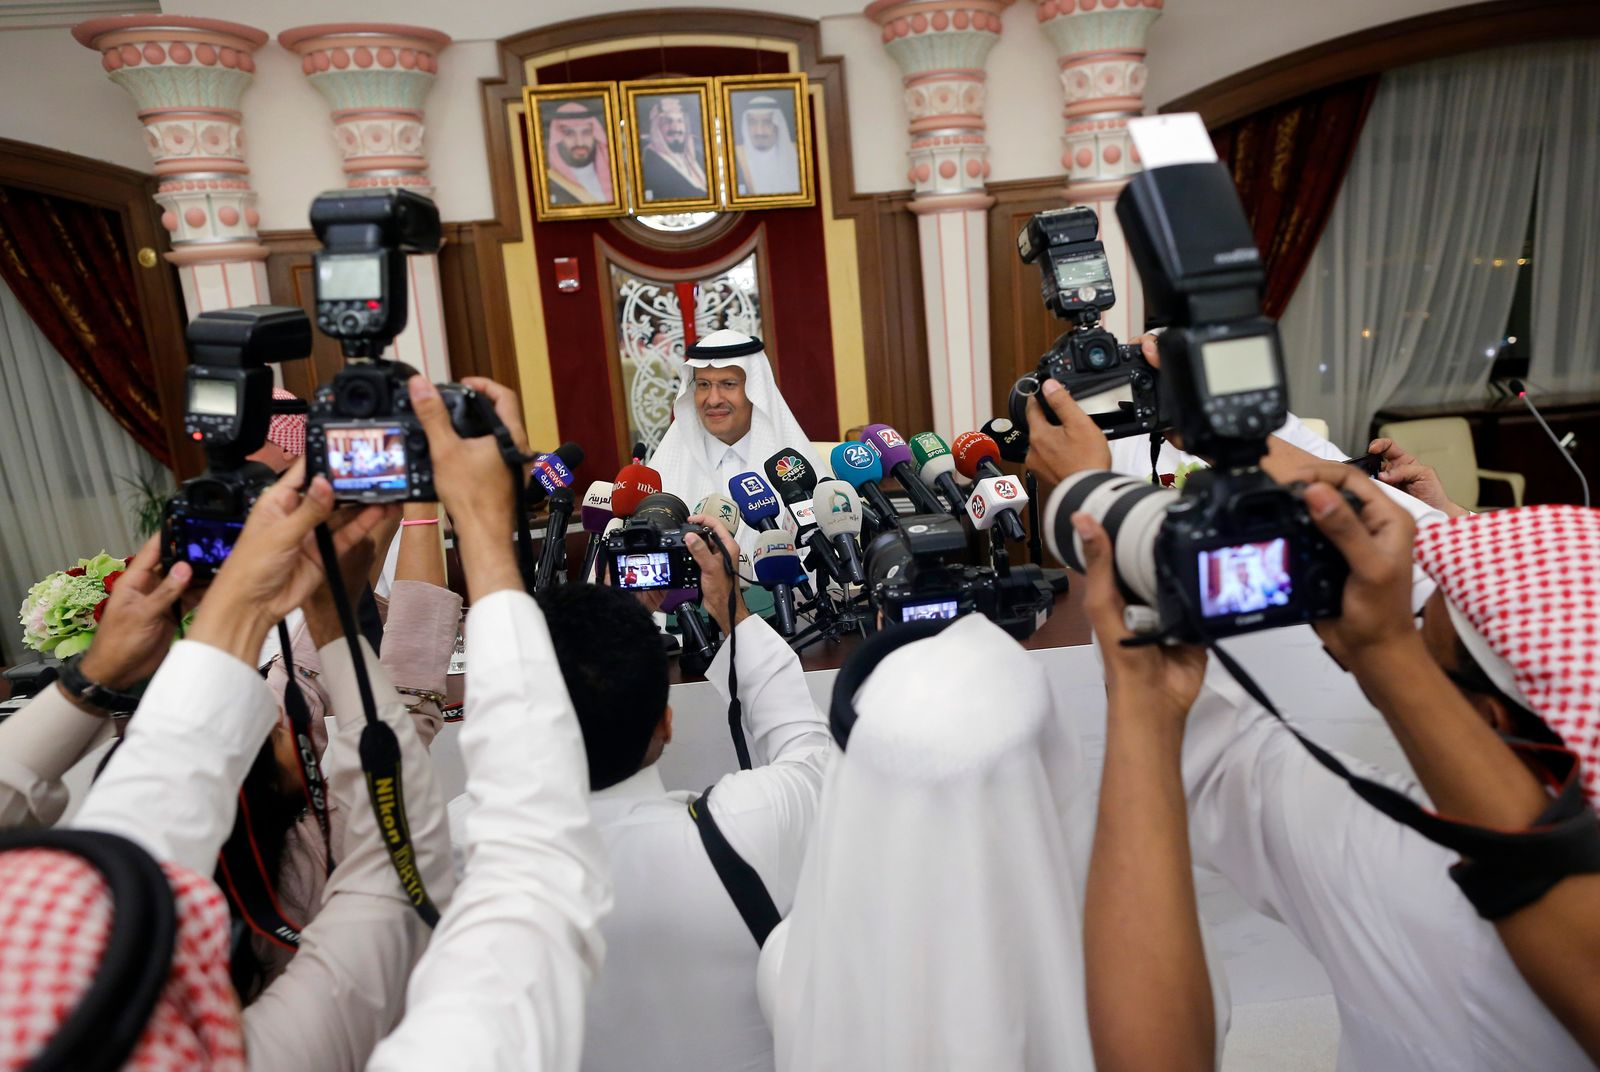 Saudi Energy Minister Prince Abdulaziz bin Salman, is surrounded by photographers as he enters a press conference in Jiddah, Saudi Arabia, Tuesday, Sept. 17, 2019. (AP Photo/Amr Nabil)